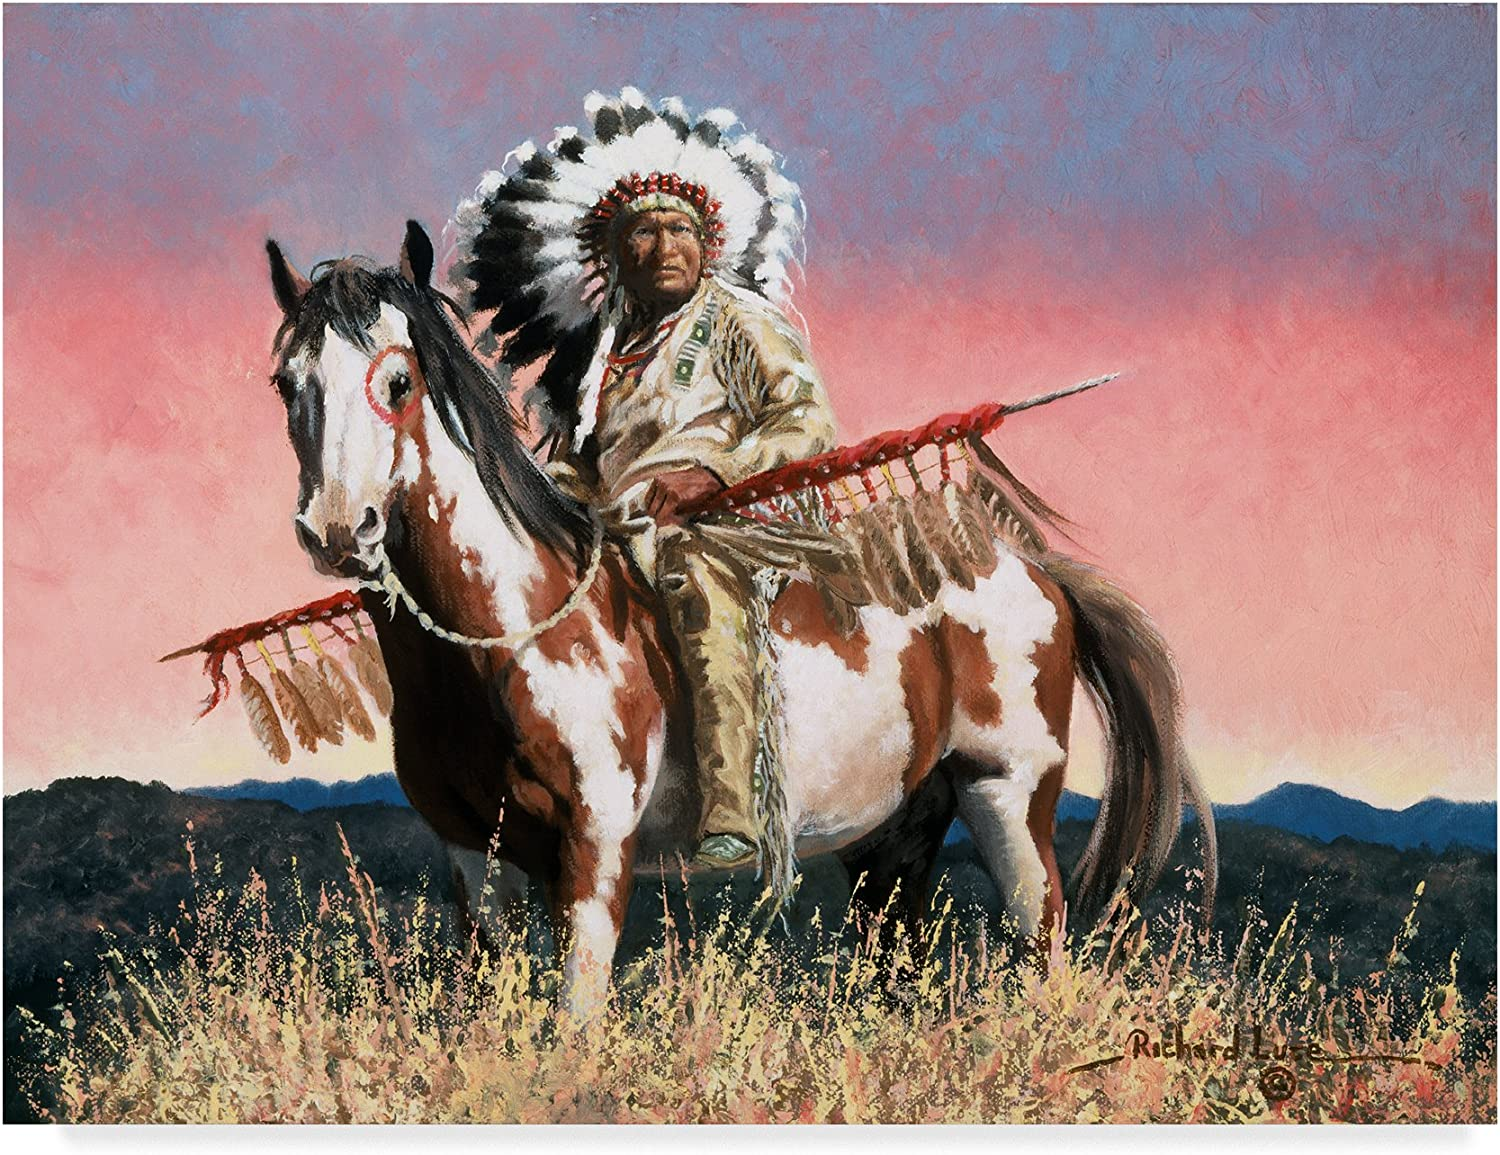 Man Of Many Honors by Richard Luce, 14x19Inch